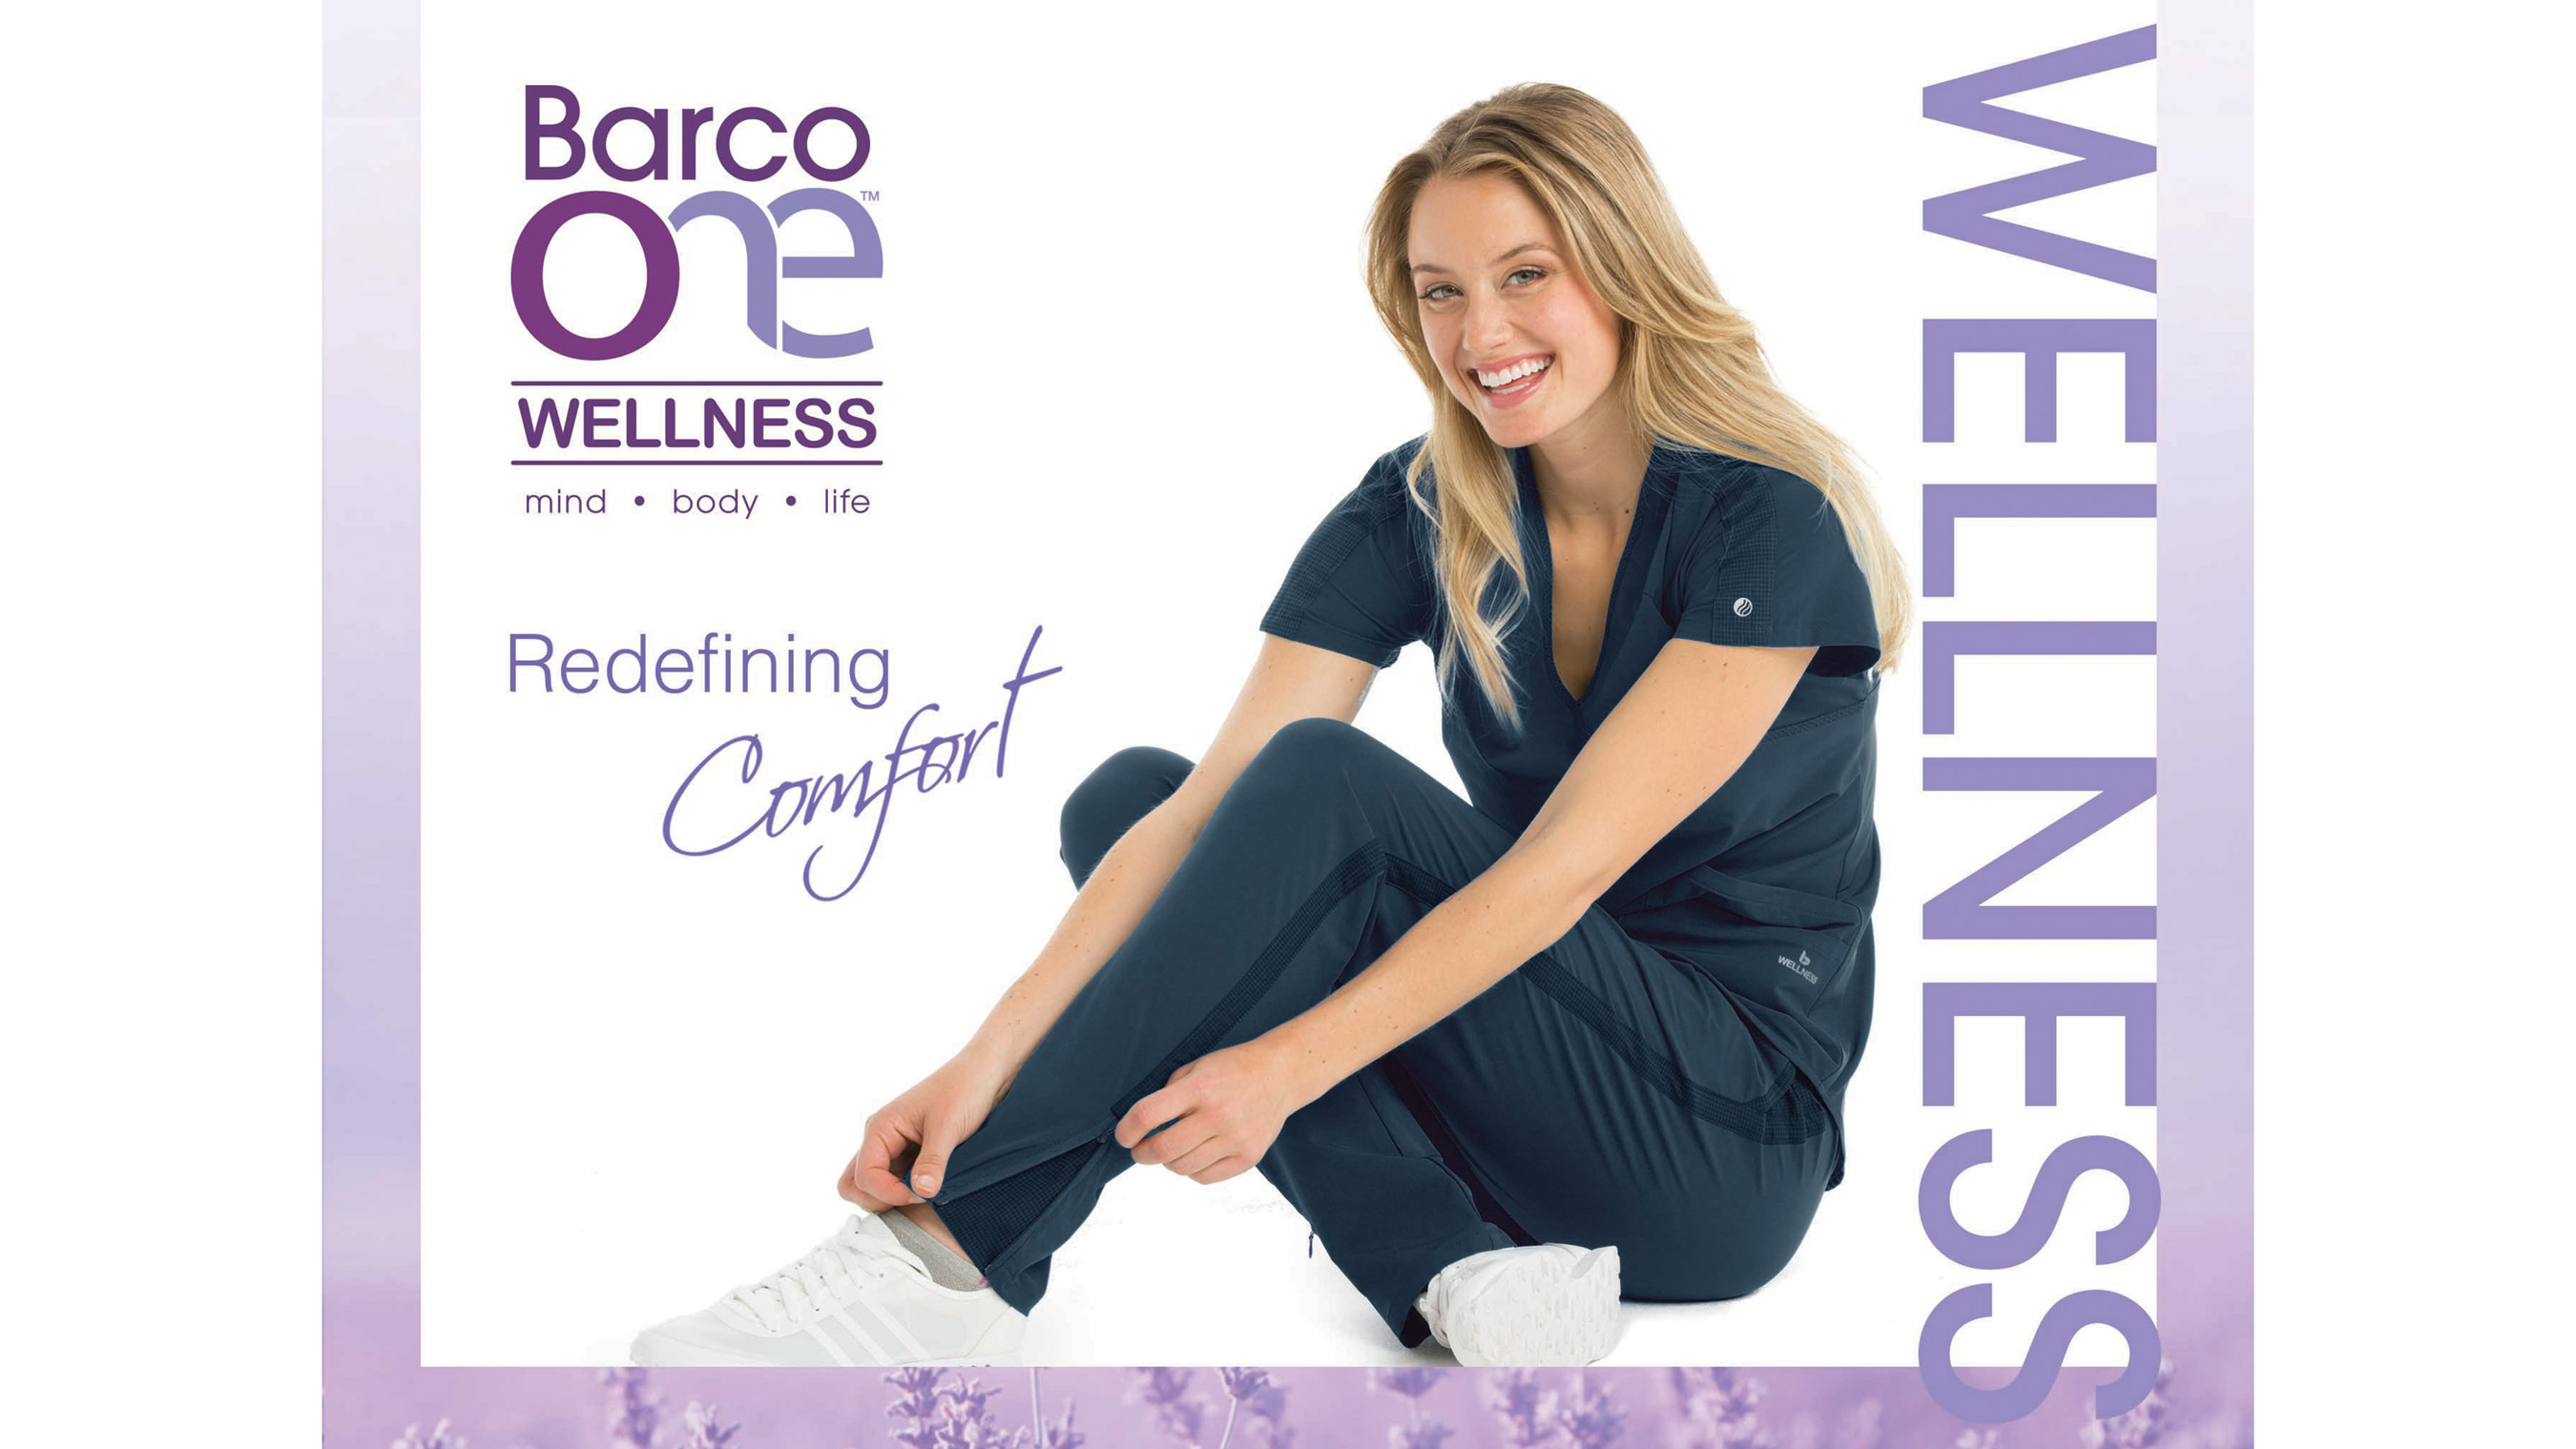 Ultra comfortable healthcare scrubs designed with temperature regulating fabric technology for those who deserve it most.